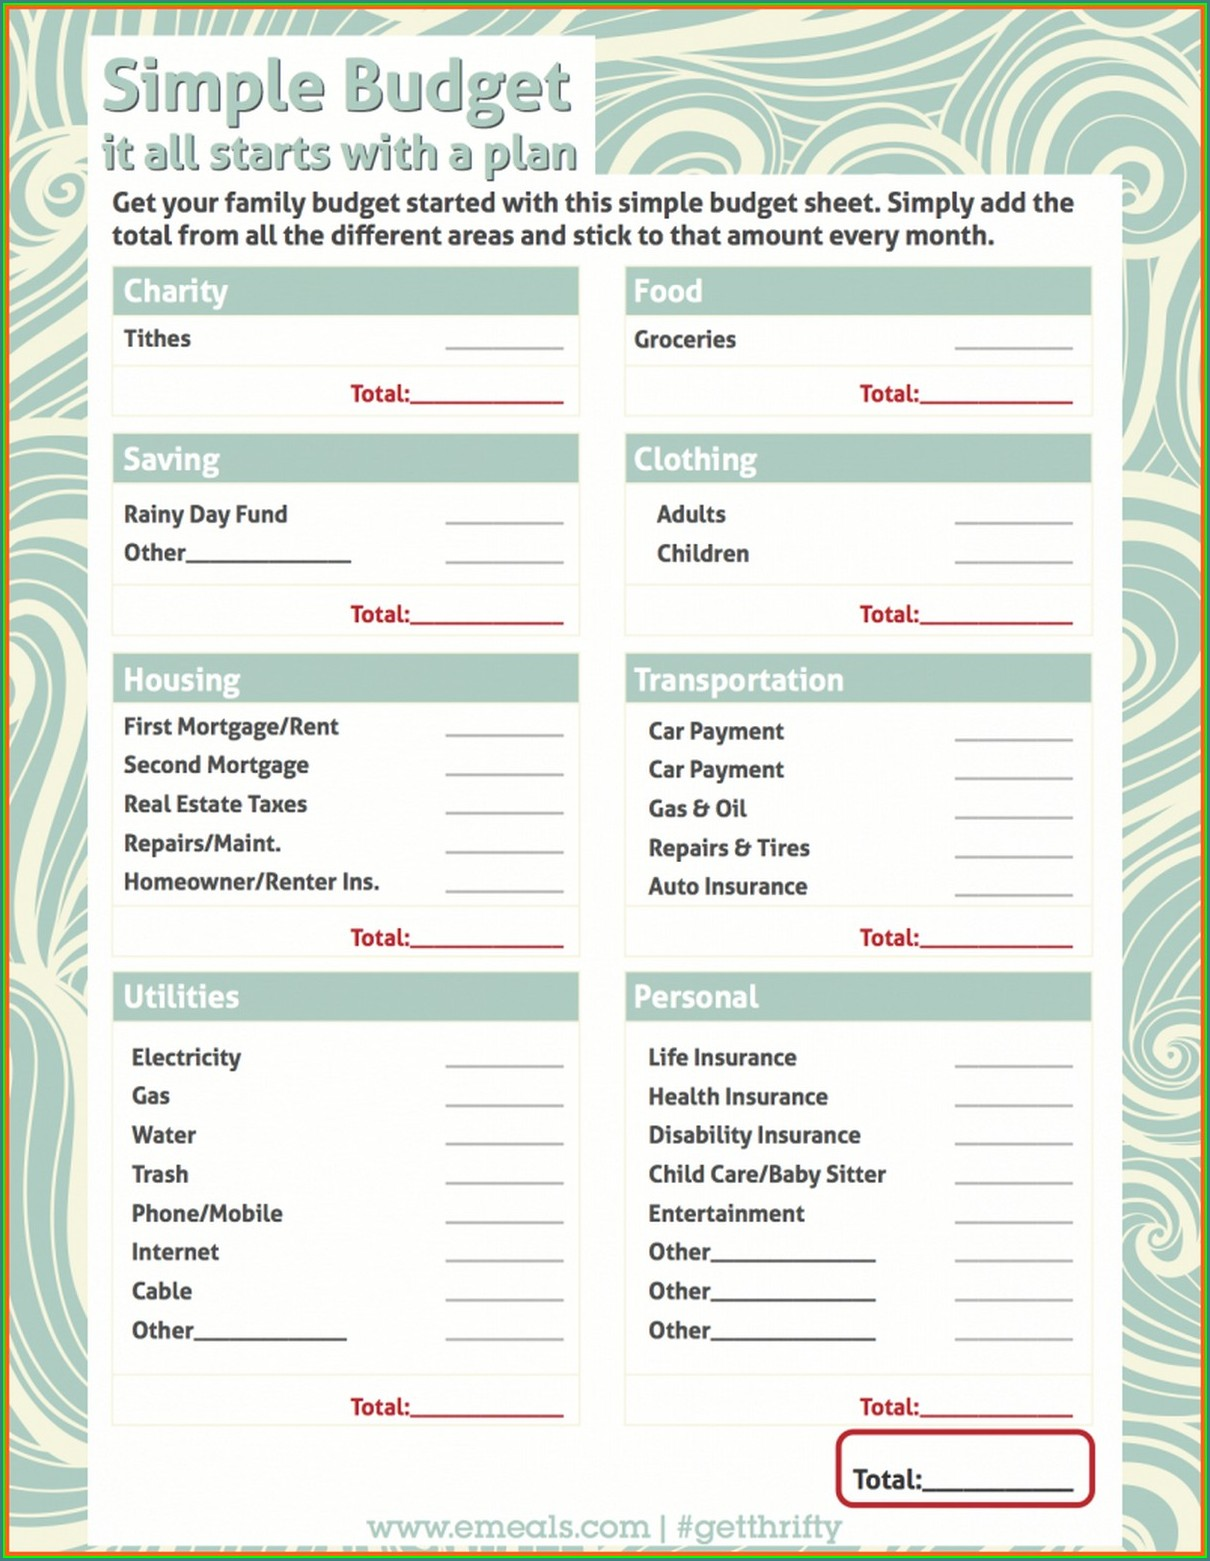 Student Budget Worksheet Answers